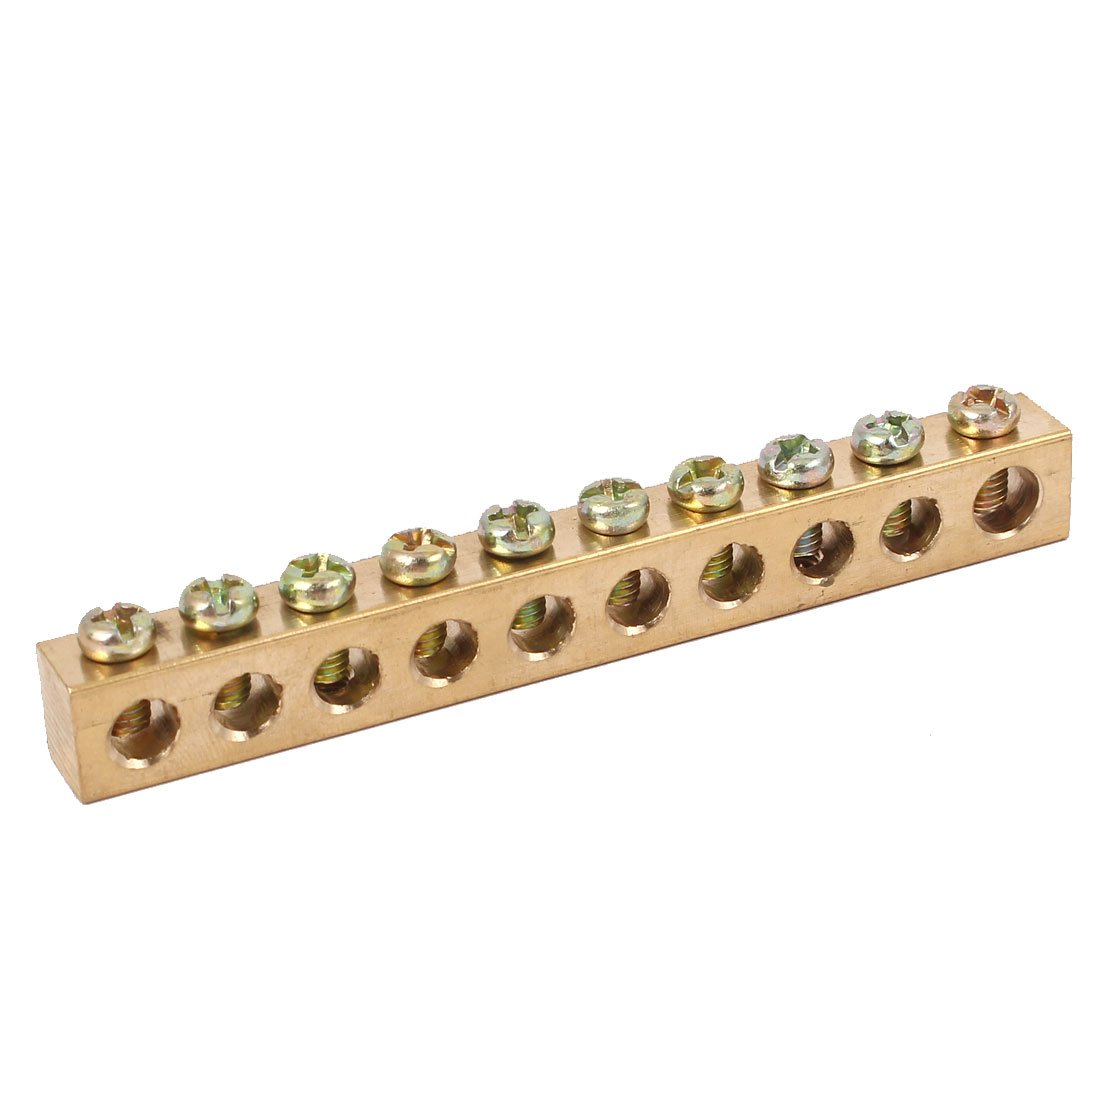 Uxcell a16030900ux0586 Free shipping / New 10 Holes Cabinet Max 77% OFF Wire Distribution Screw